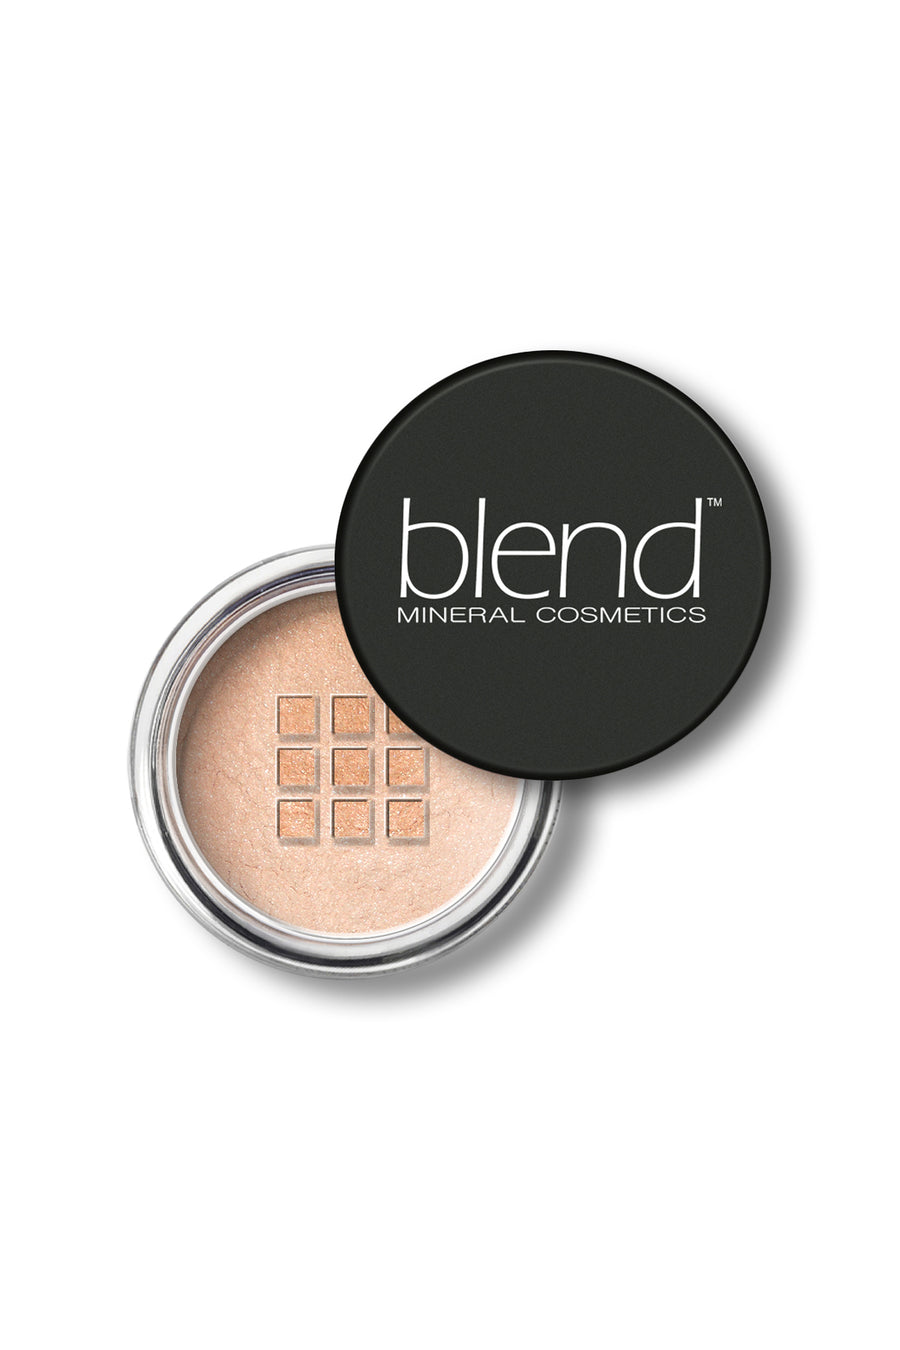 Shimmer Eyeshadow #8 - Lovely Peach - Blend Mineral Cosmetics